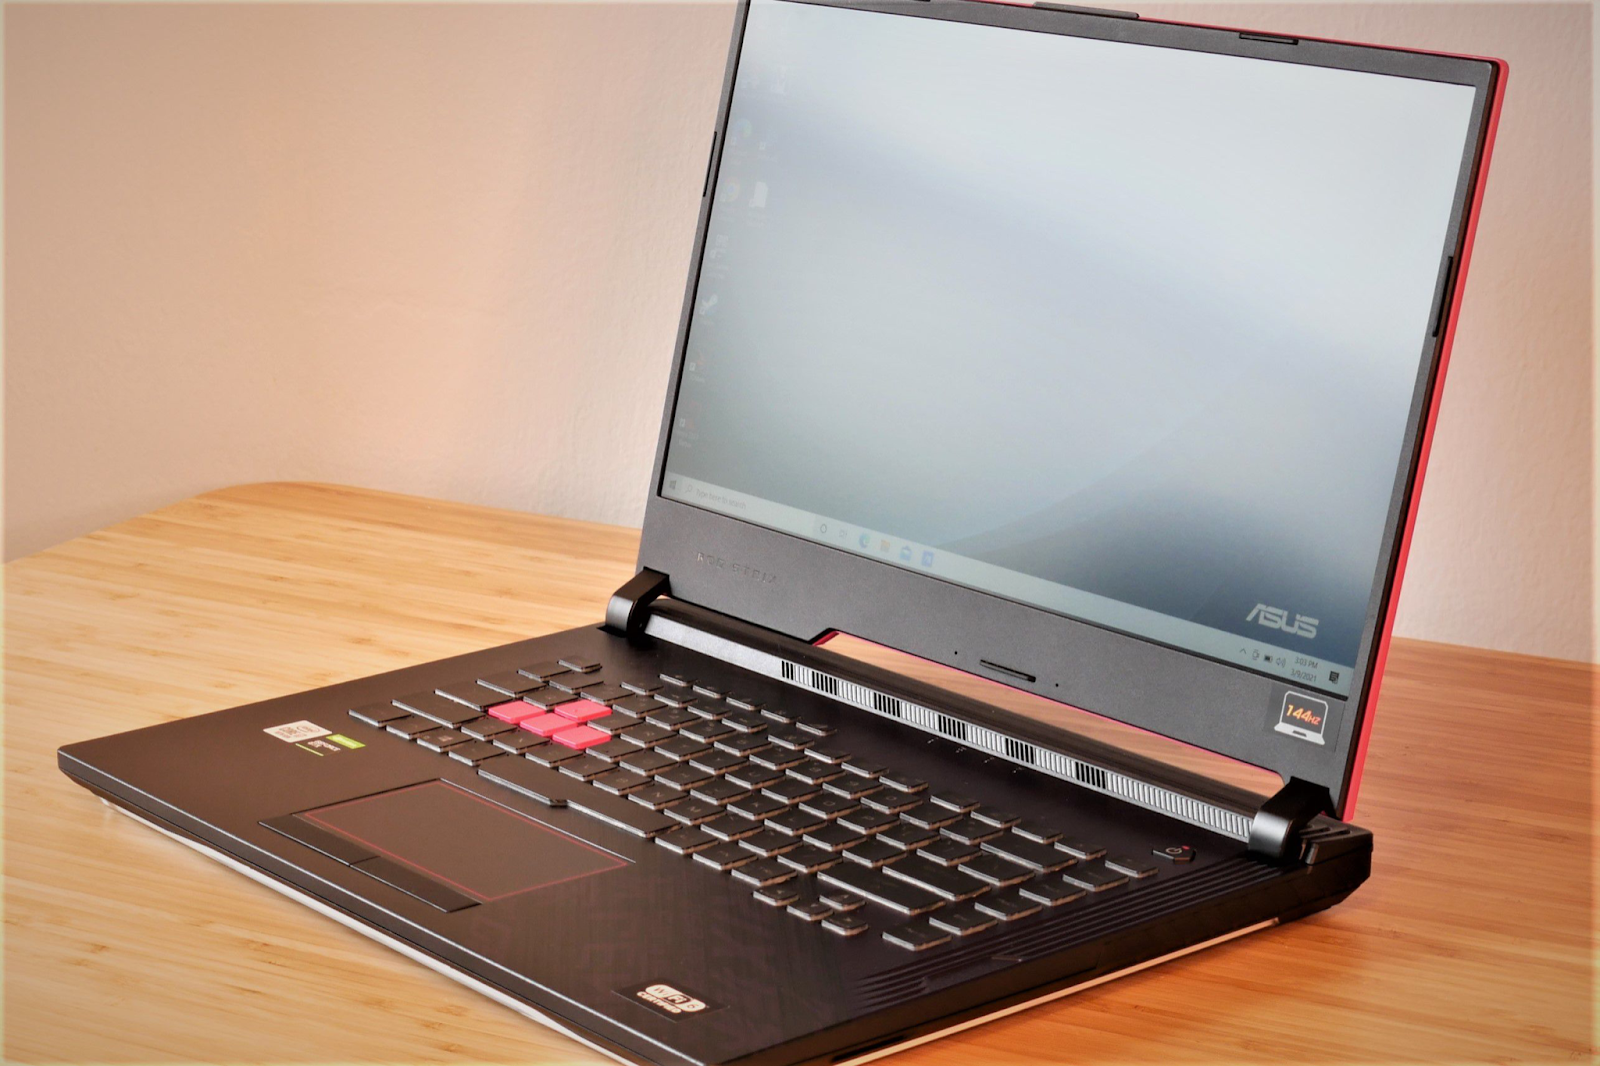 How To Factory Reset An Asus Laptop?